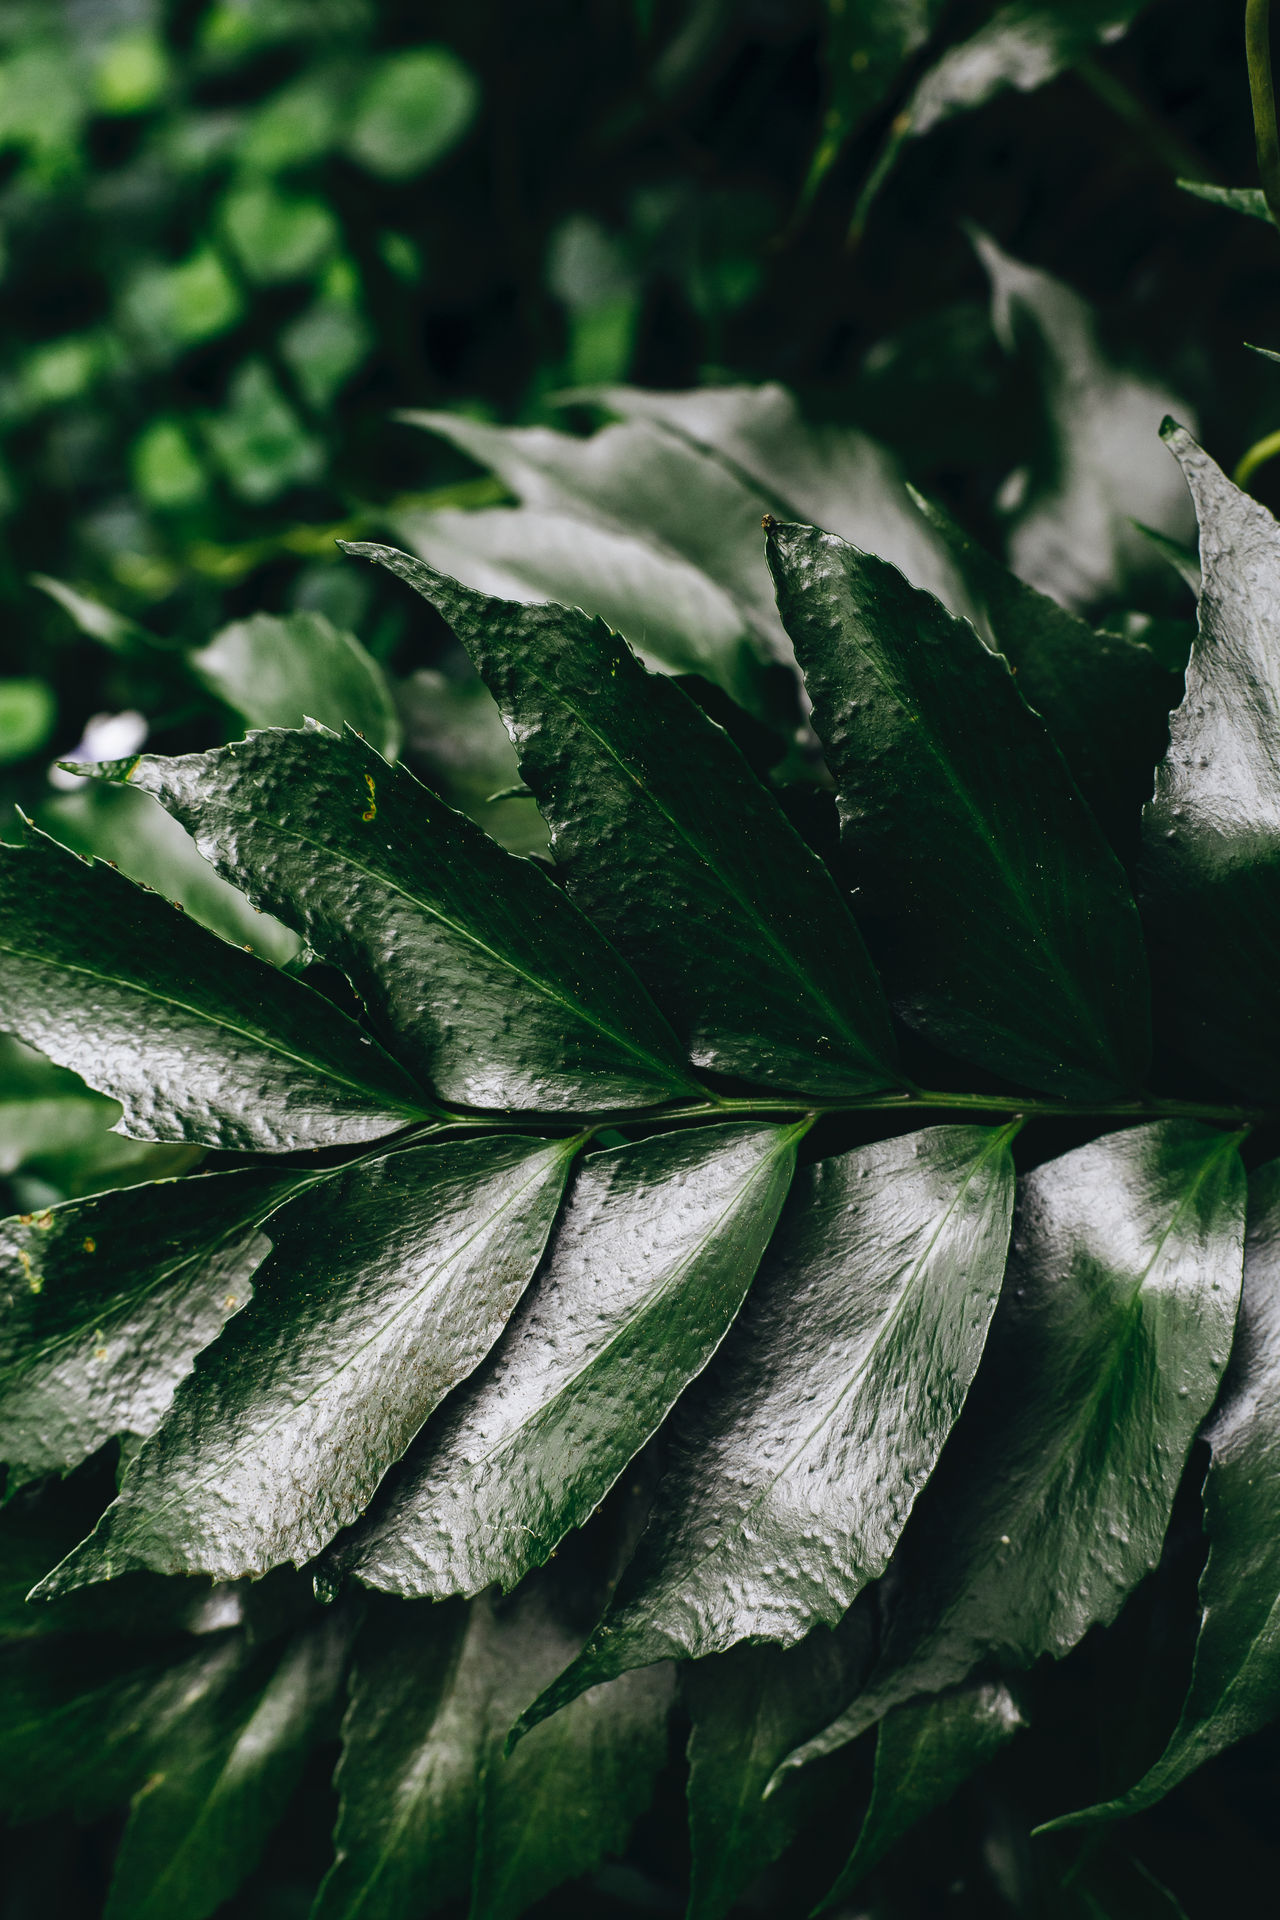 Freshest freshness Backgrounds Close-up Day EyeEm Nature Lover Food Food And Drink Freshness Green Color Growth Healthy Eating Leaf Nature No People Outdoors Plant Vegetable